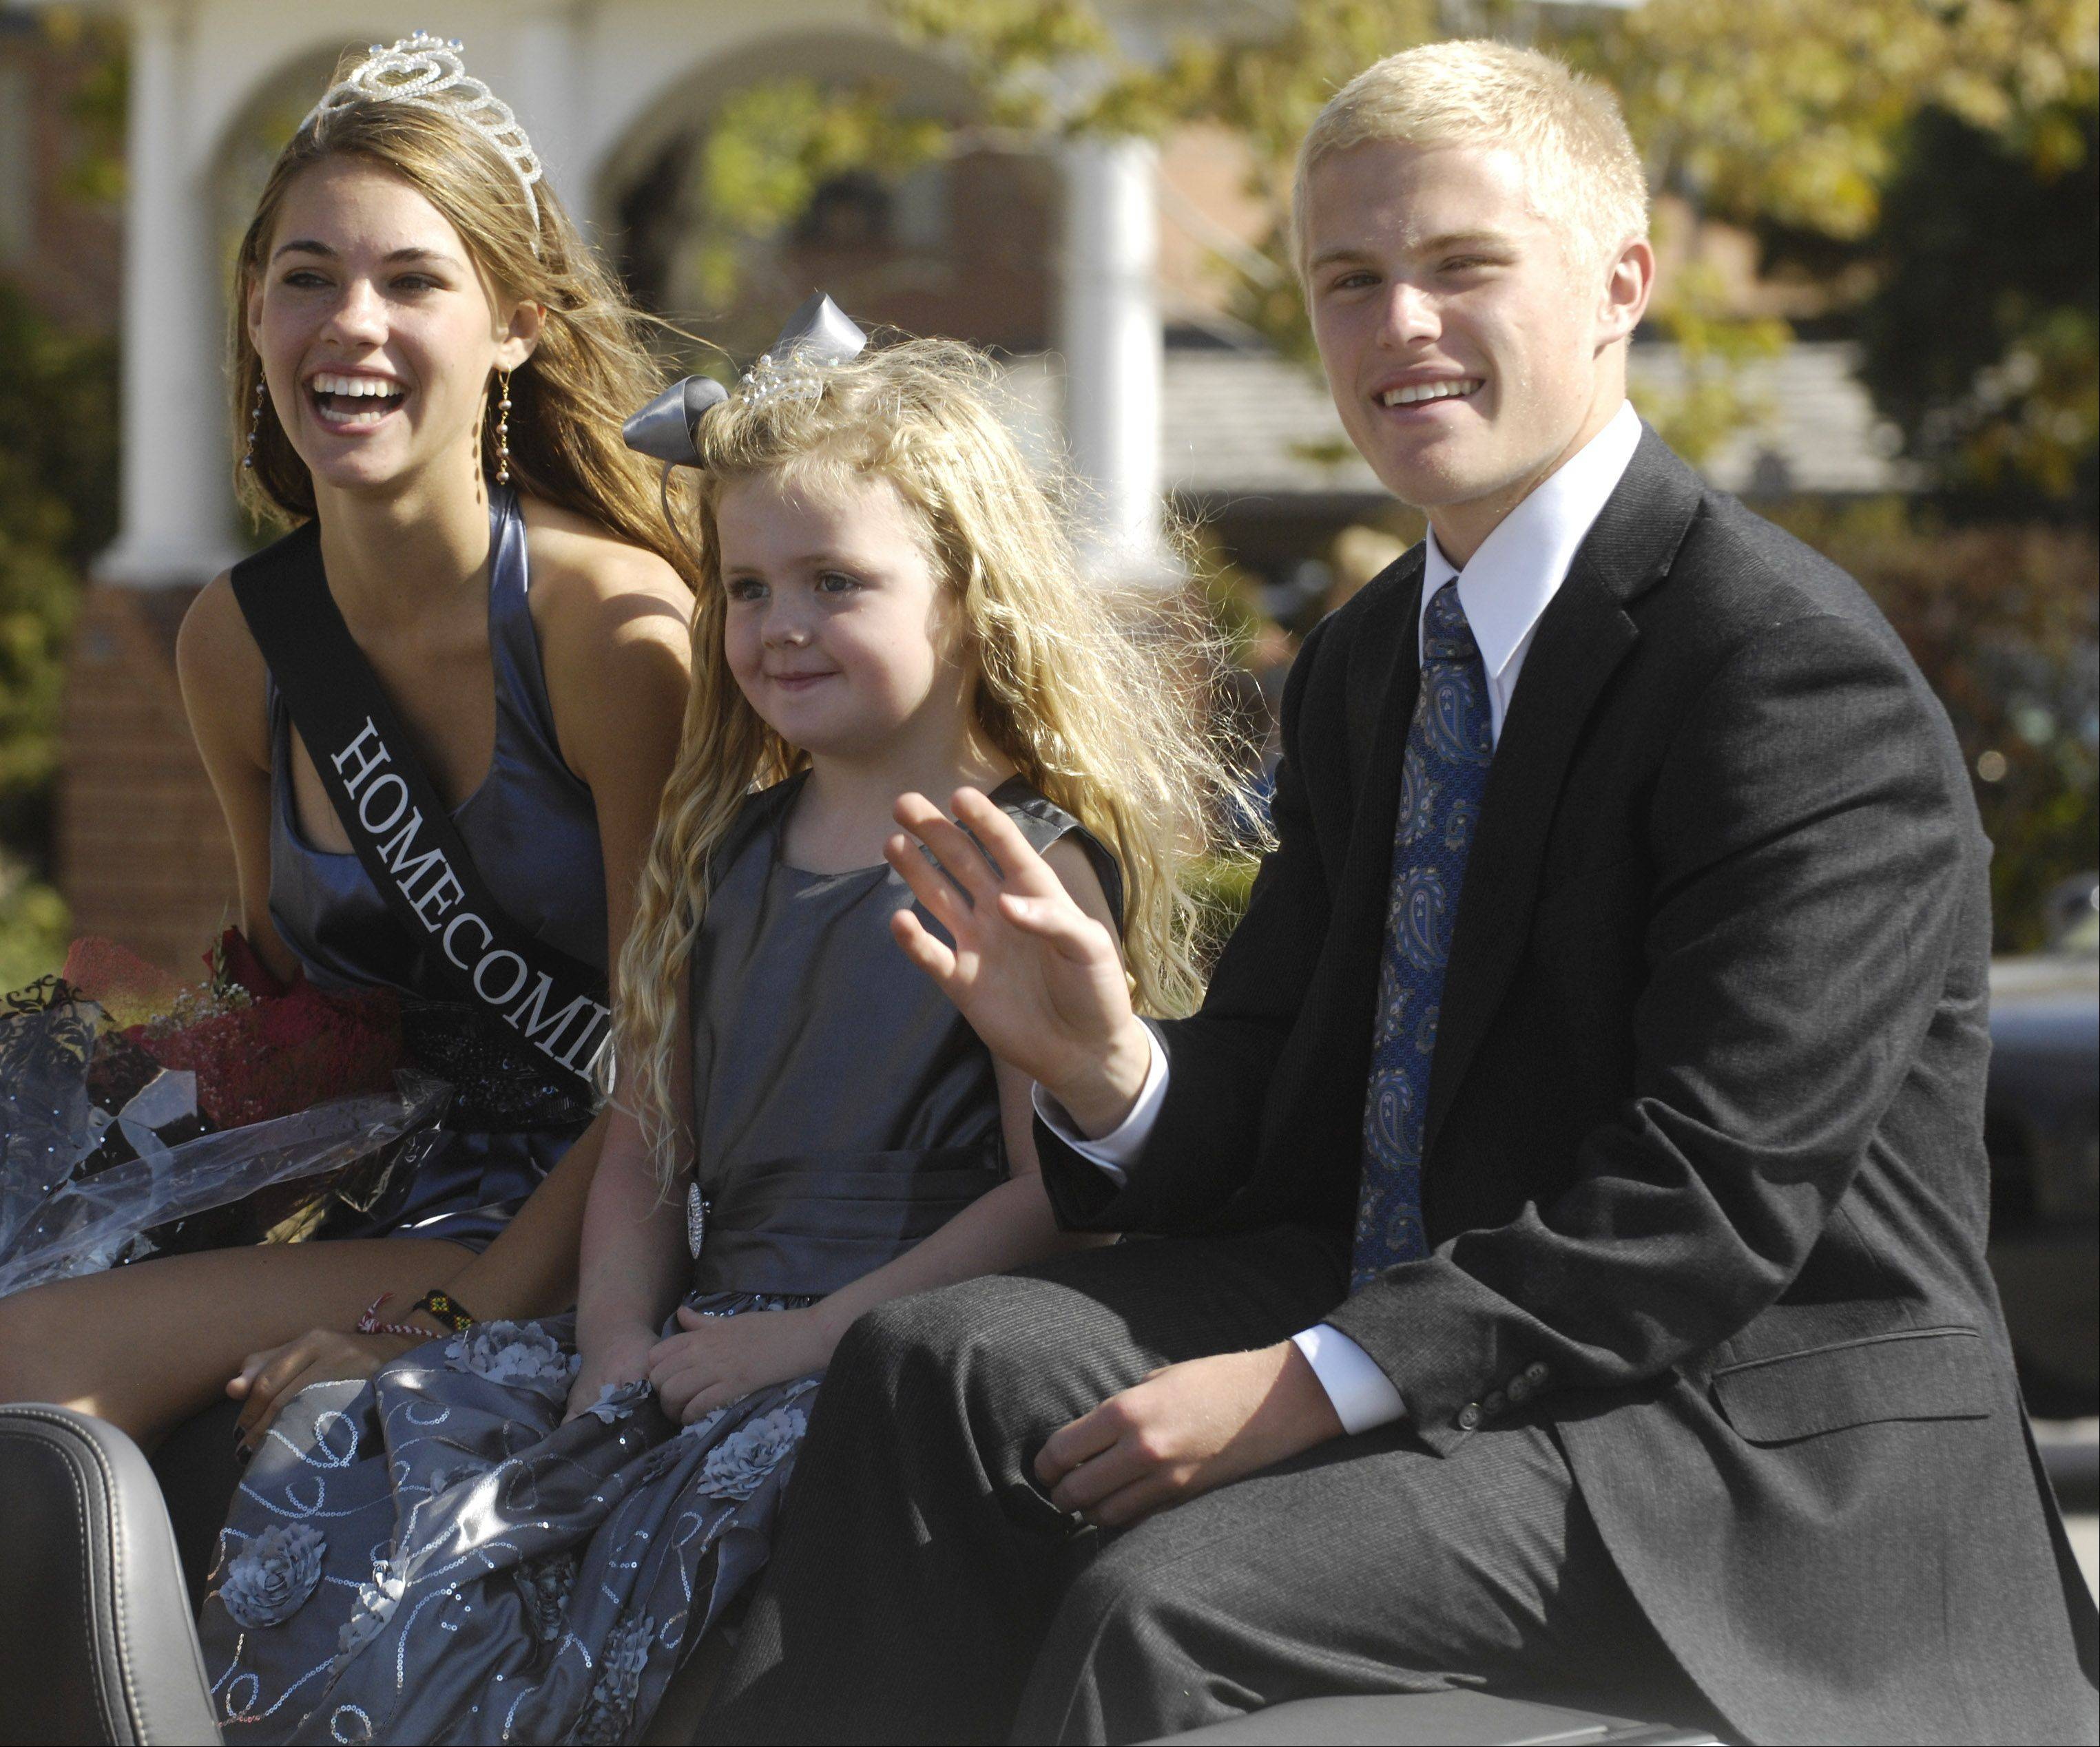 Homecoming Queen Liz Diamond rides with Elle McLaughlin, 6, and escort Zach Rowe during the Barrington High School Homecoming parade.